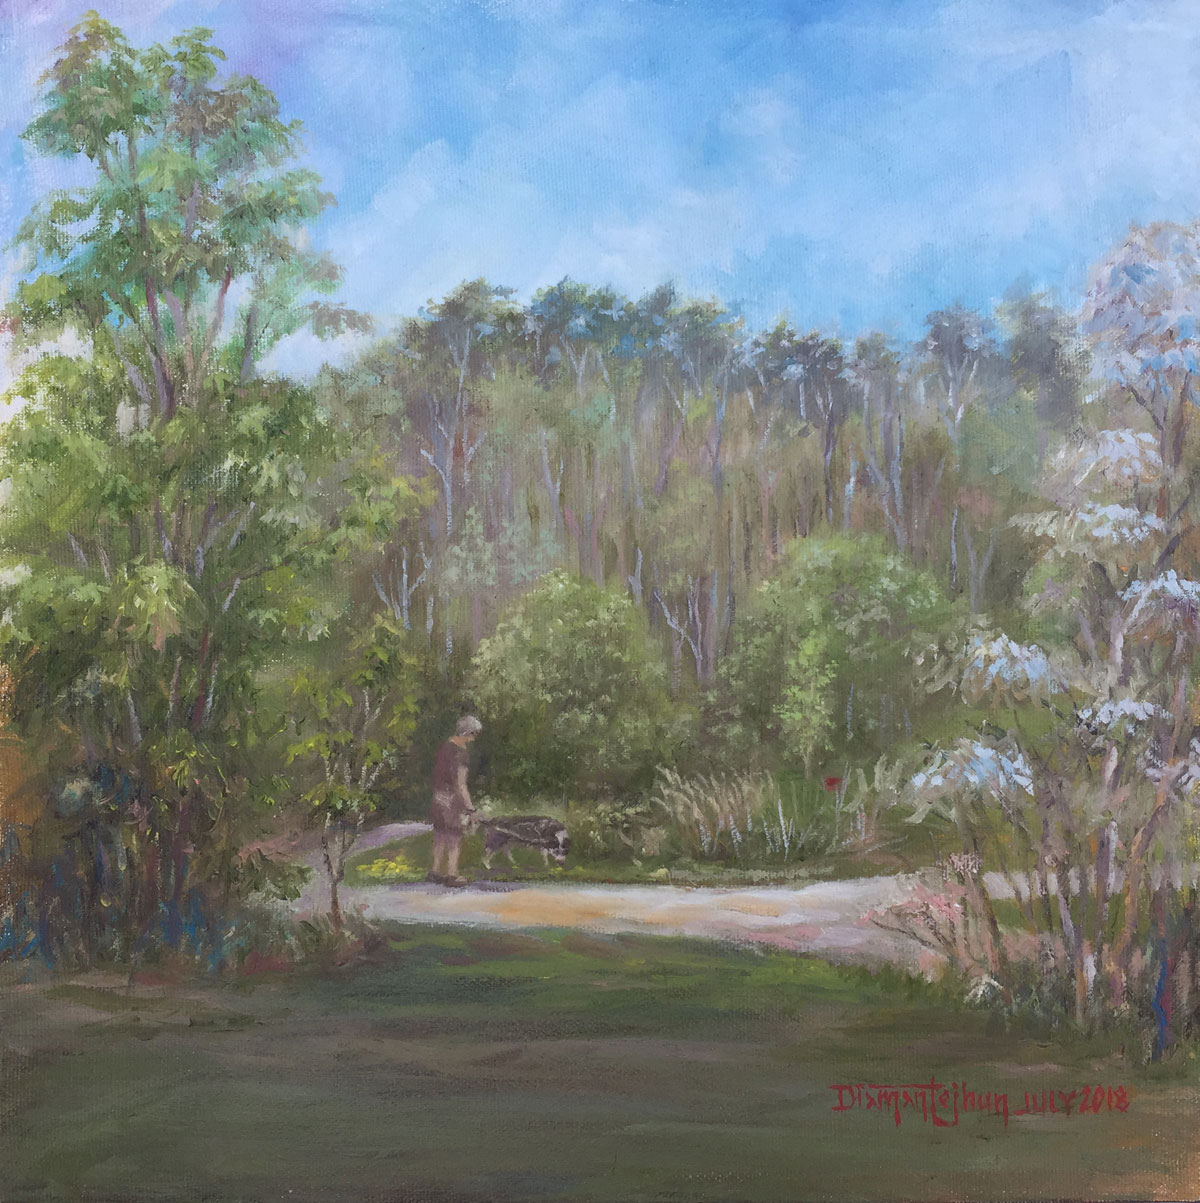 NPCC – on-the-spot painting at the park